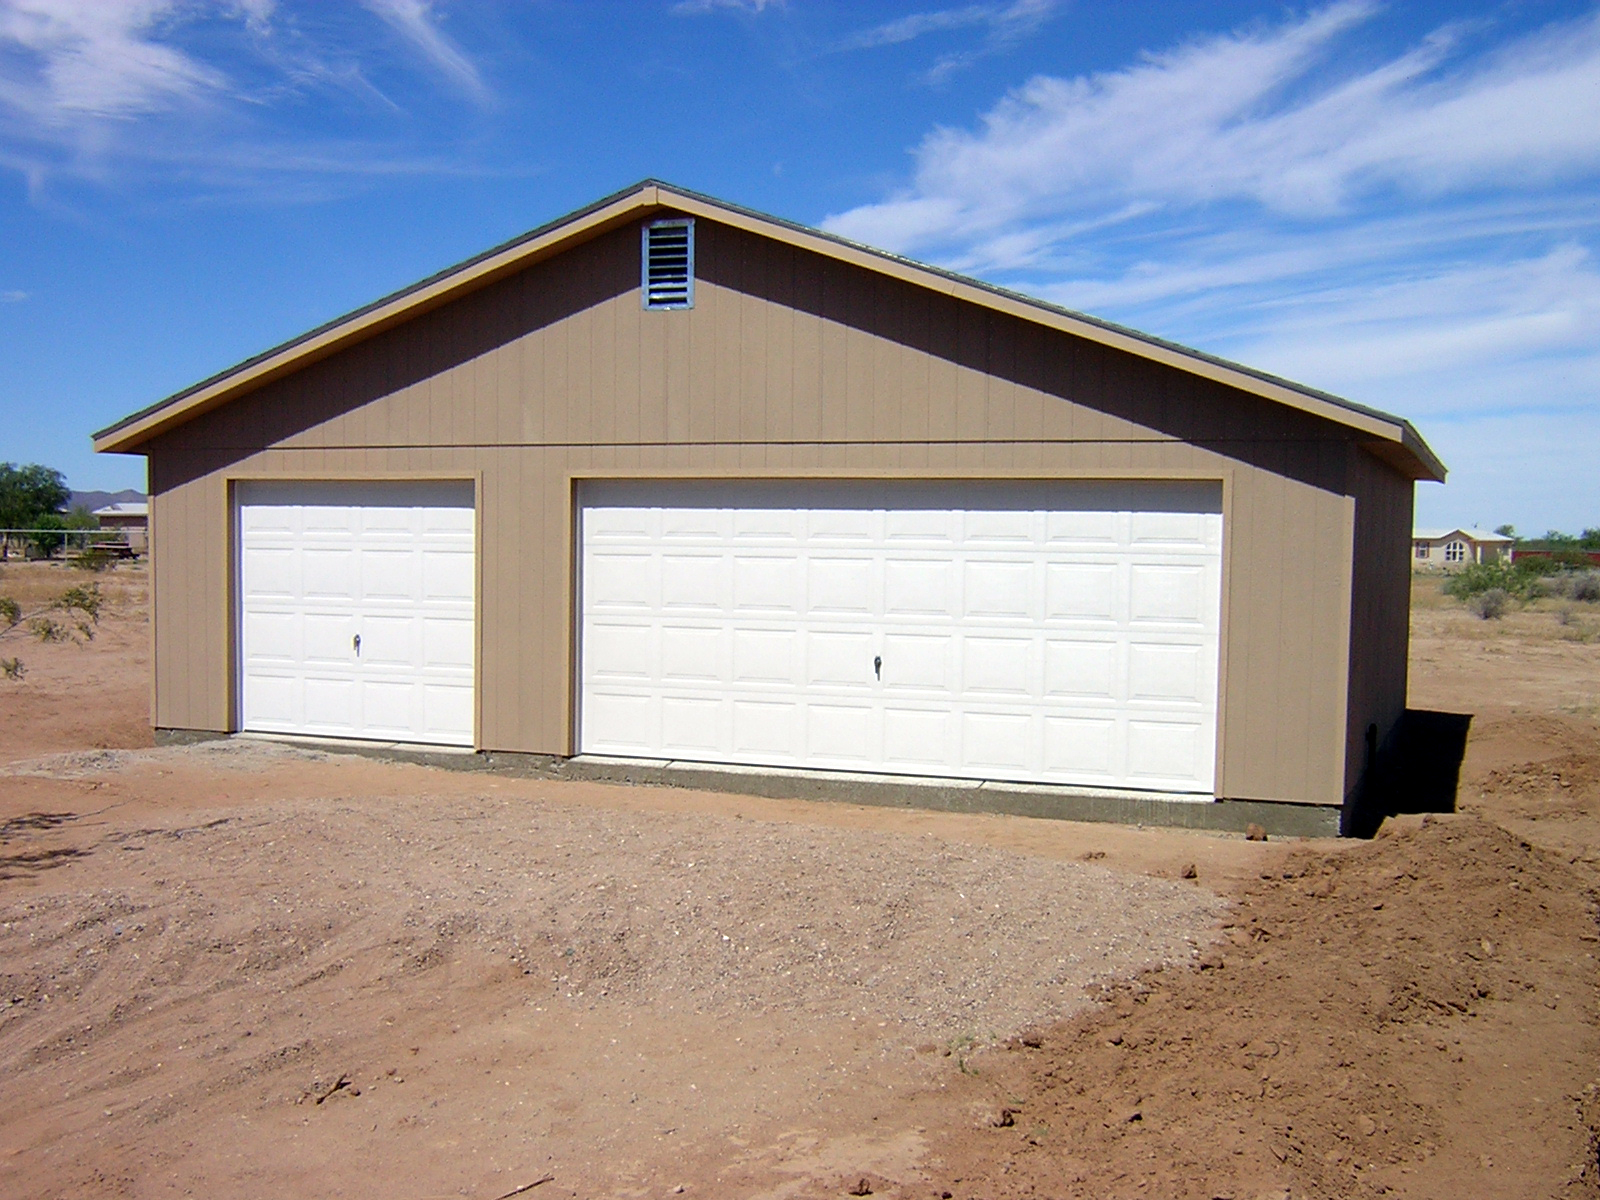 Garage photo galleries for Two door garage